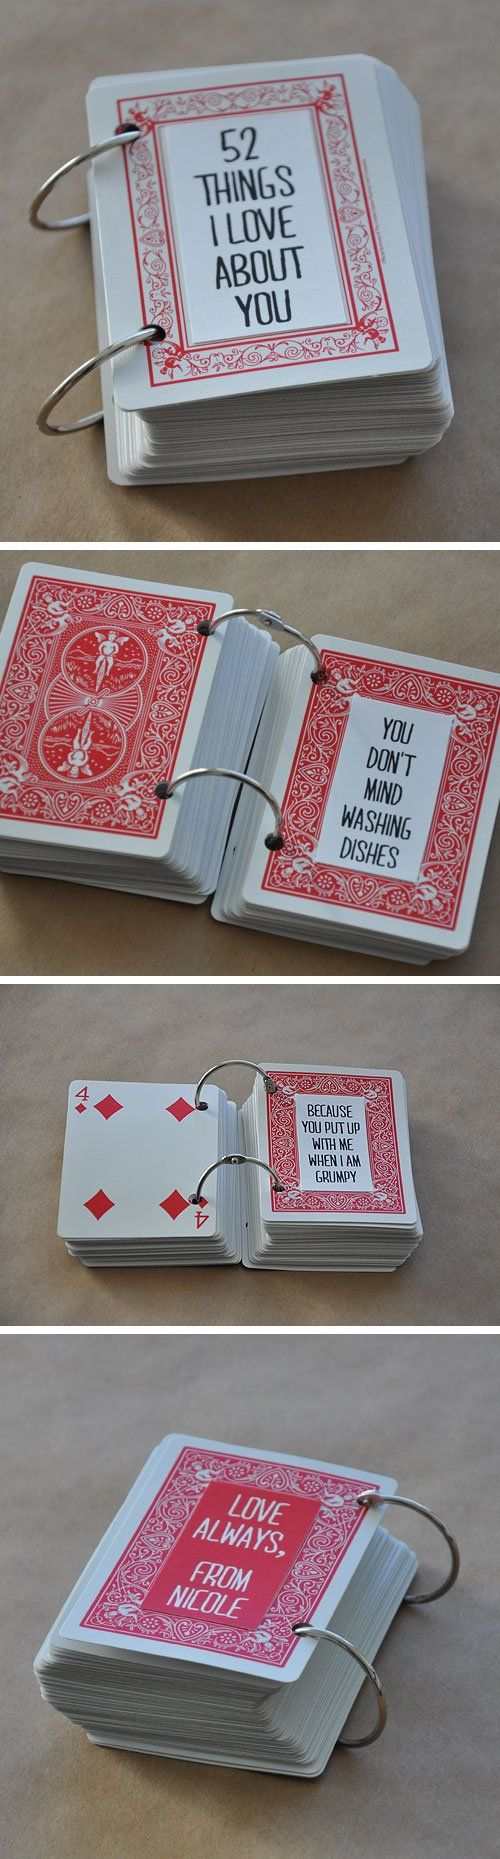 DIY: #Upcycled #Valentine's Day #Gifts ideas (avoid consuming!) | Eco Green Love